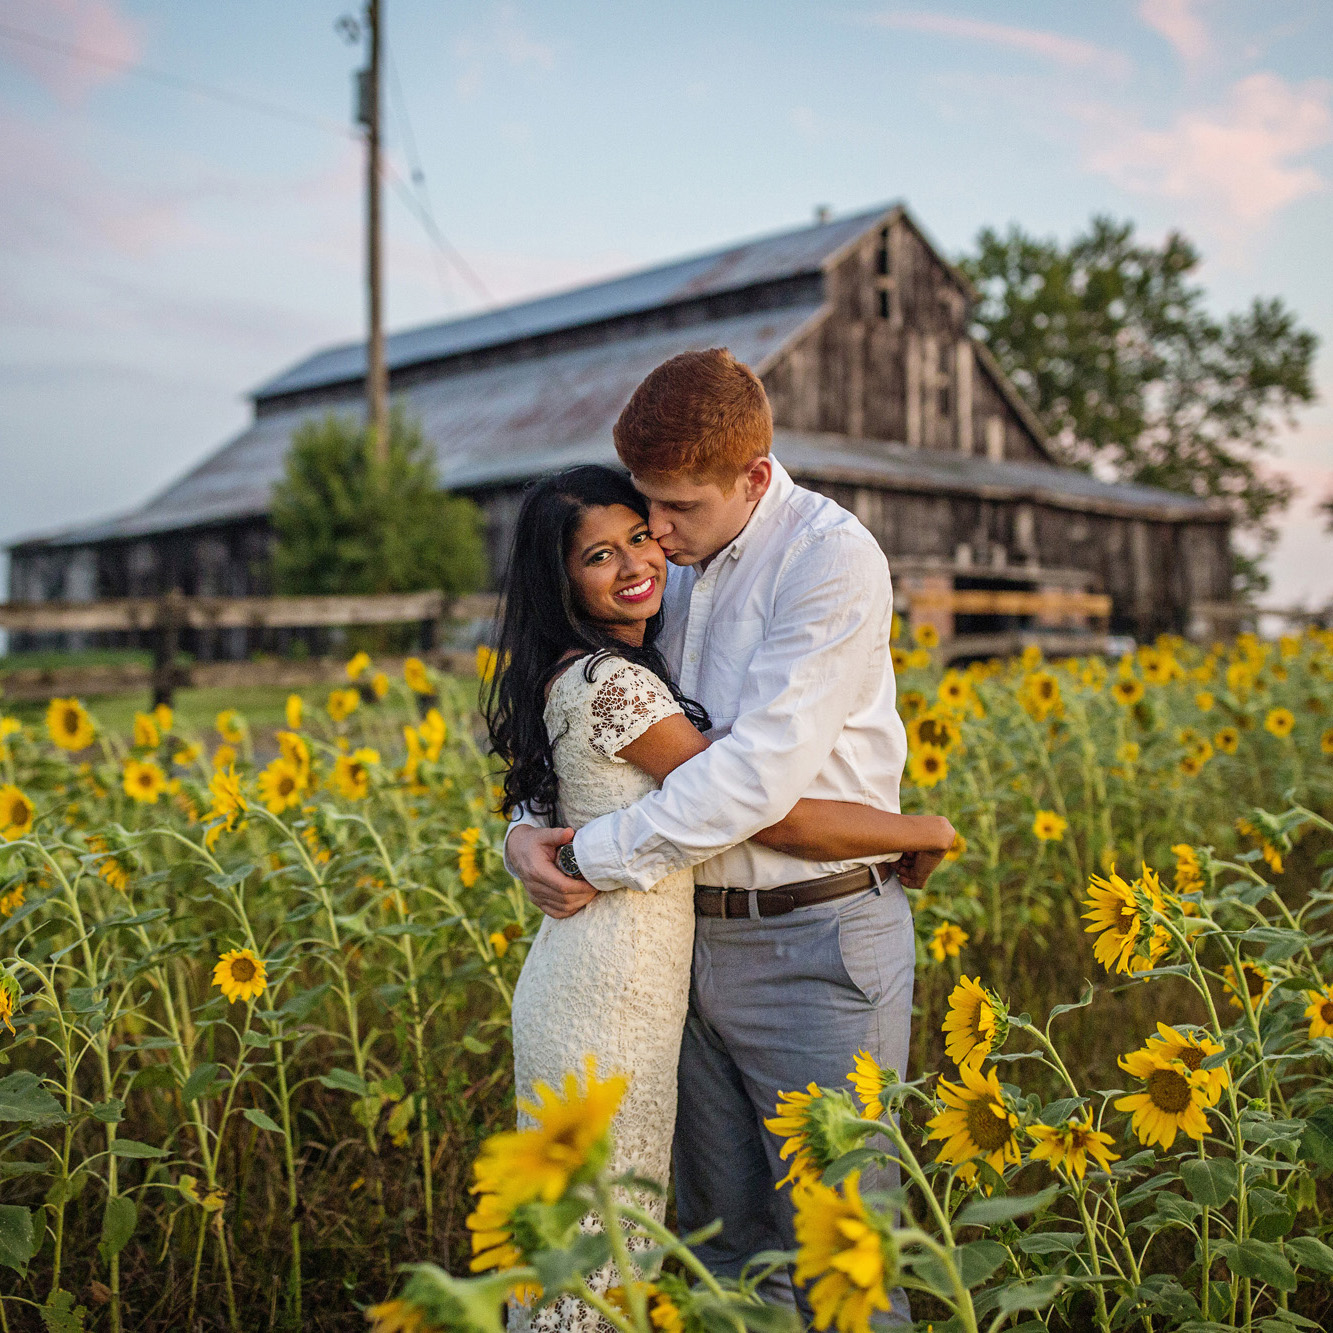 Seriously_Sabrina_Photography_Lexington_Midway_Kentucky_Engagement_Merefield_Sunflowers_Naz_and_Drew35.jpg